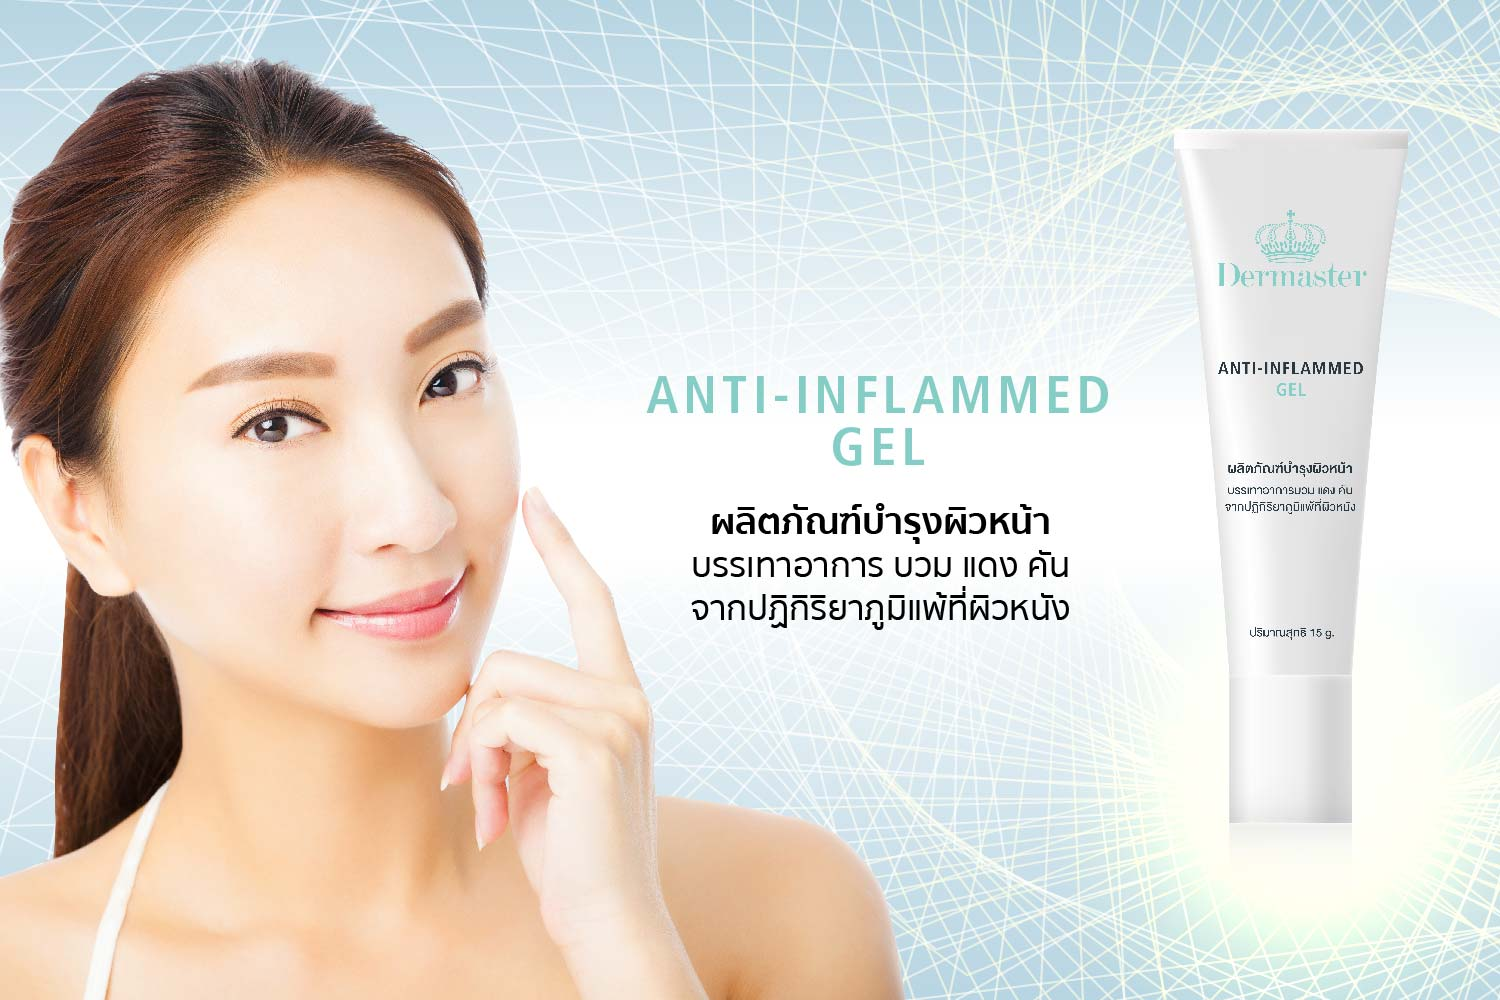 skin-care-anti-inflammed-gel-1